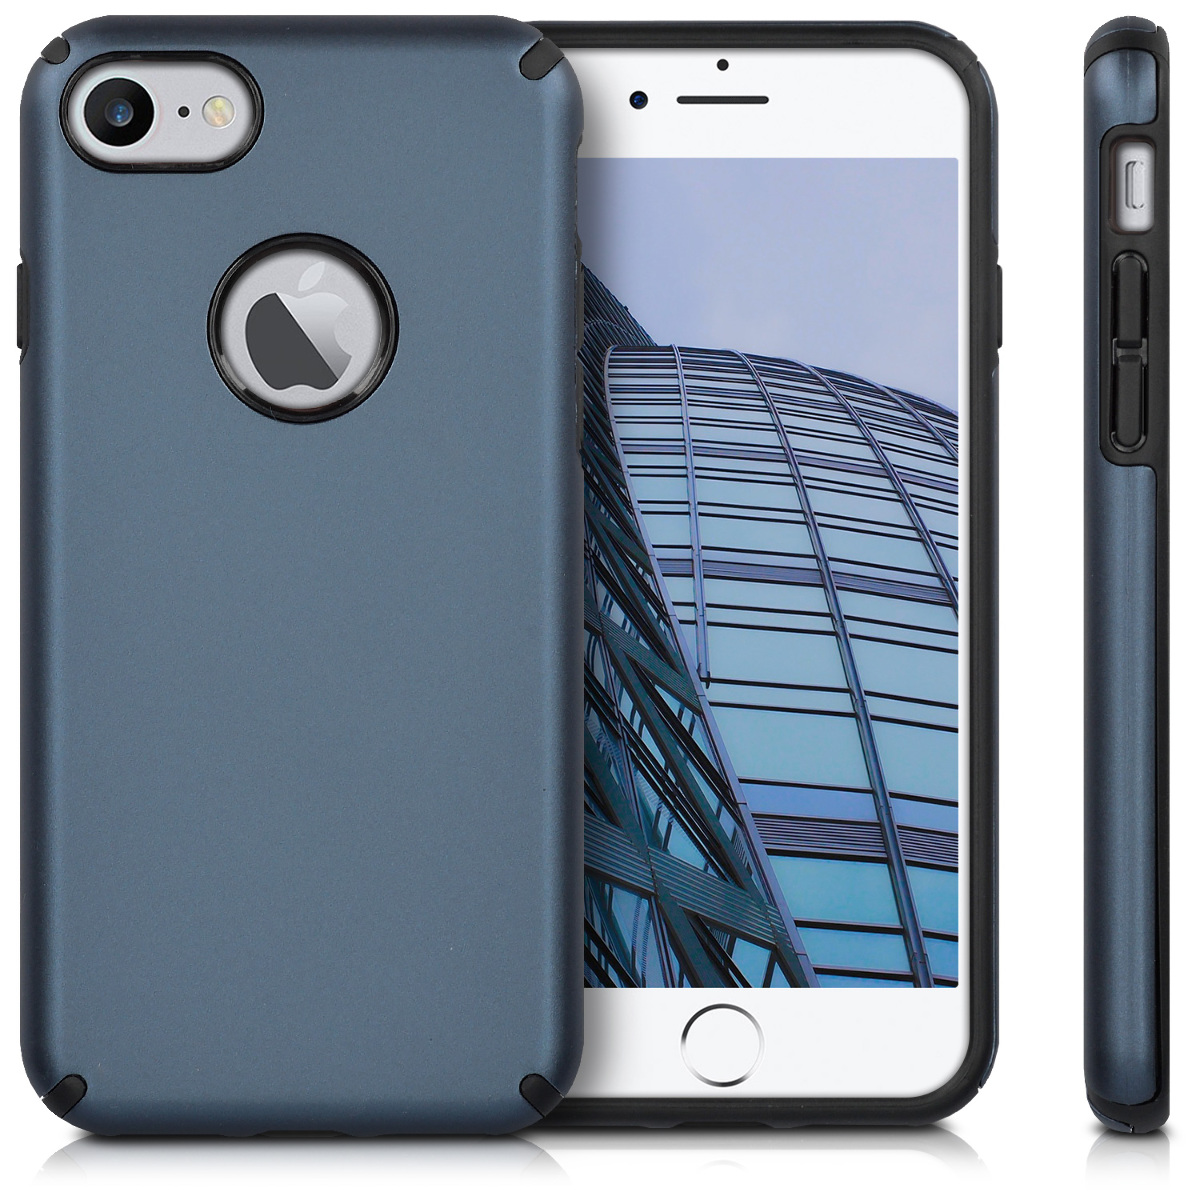 FUNDA-DE-GEL-POUR-APPLE-IPHONE-7-8-CARCASA-PROTECTORA-ESTUCHE